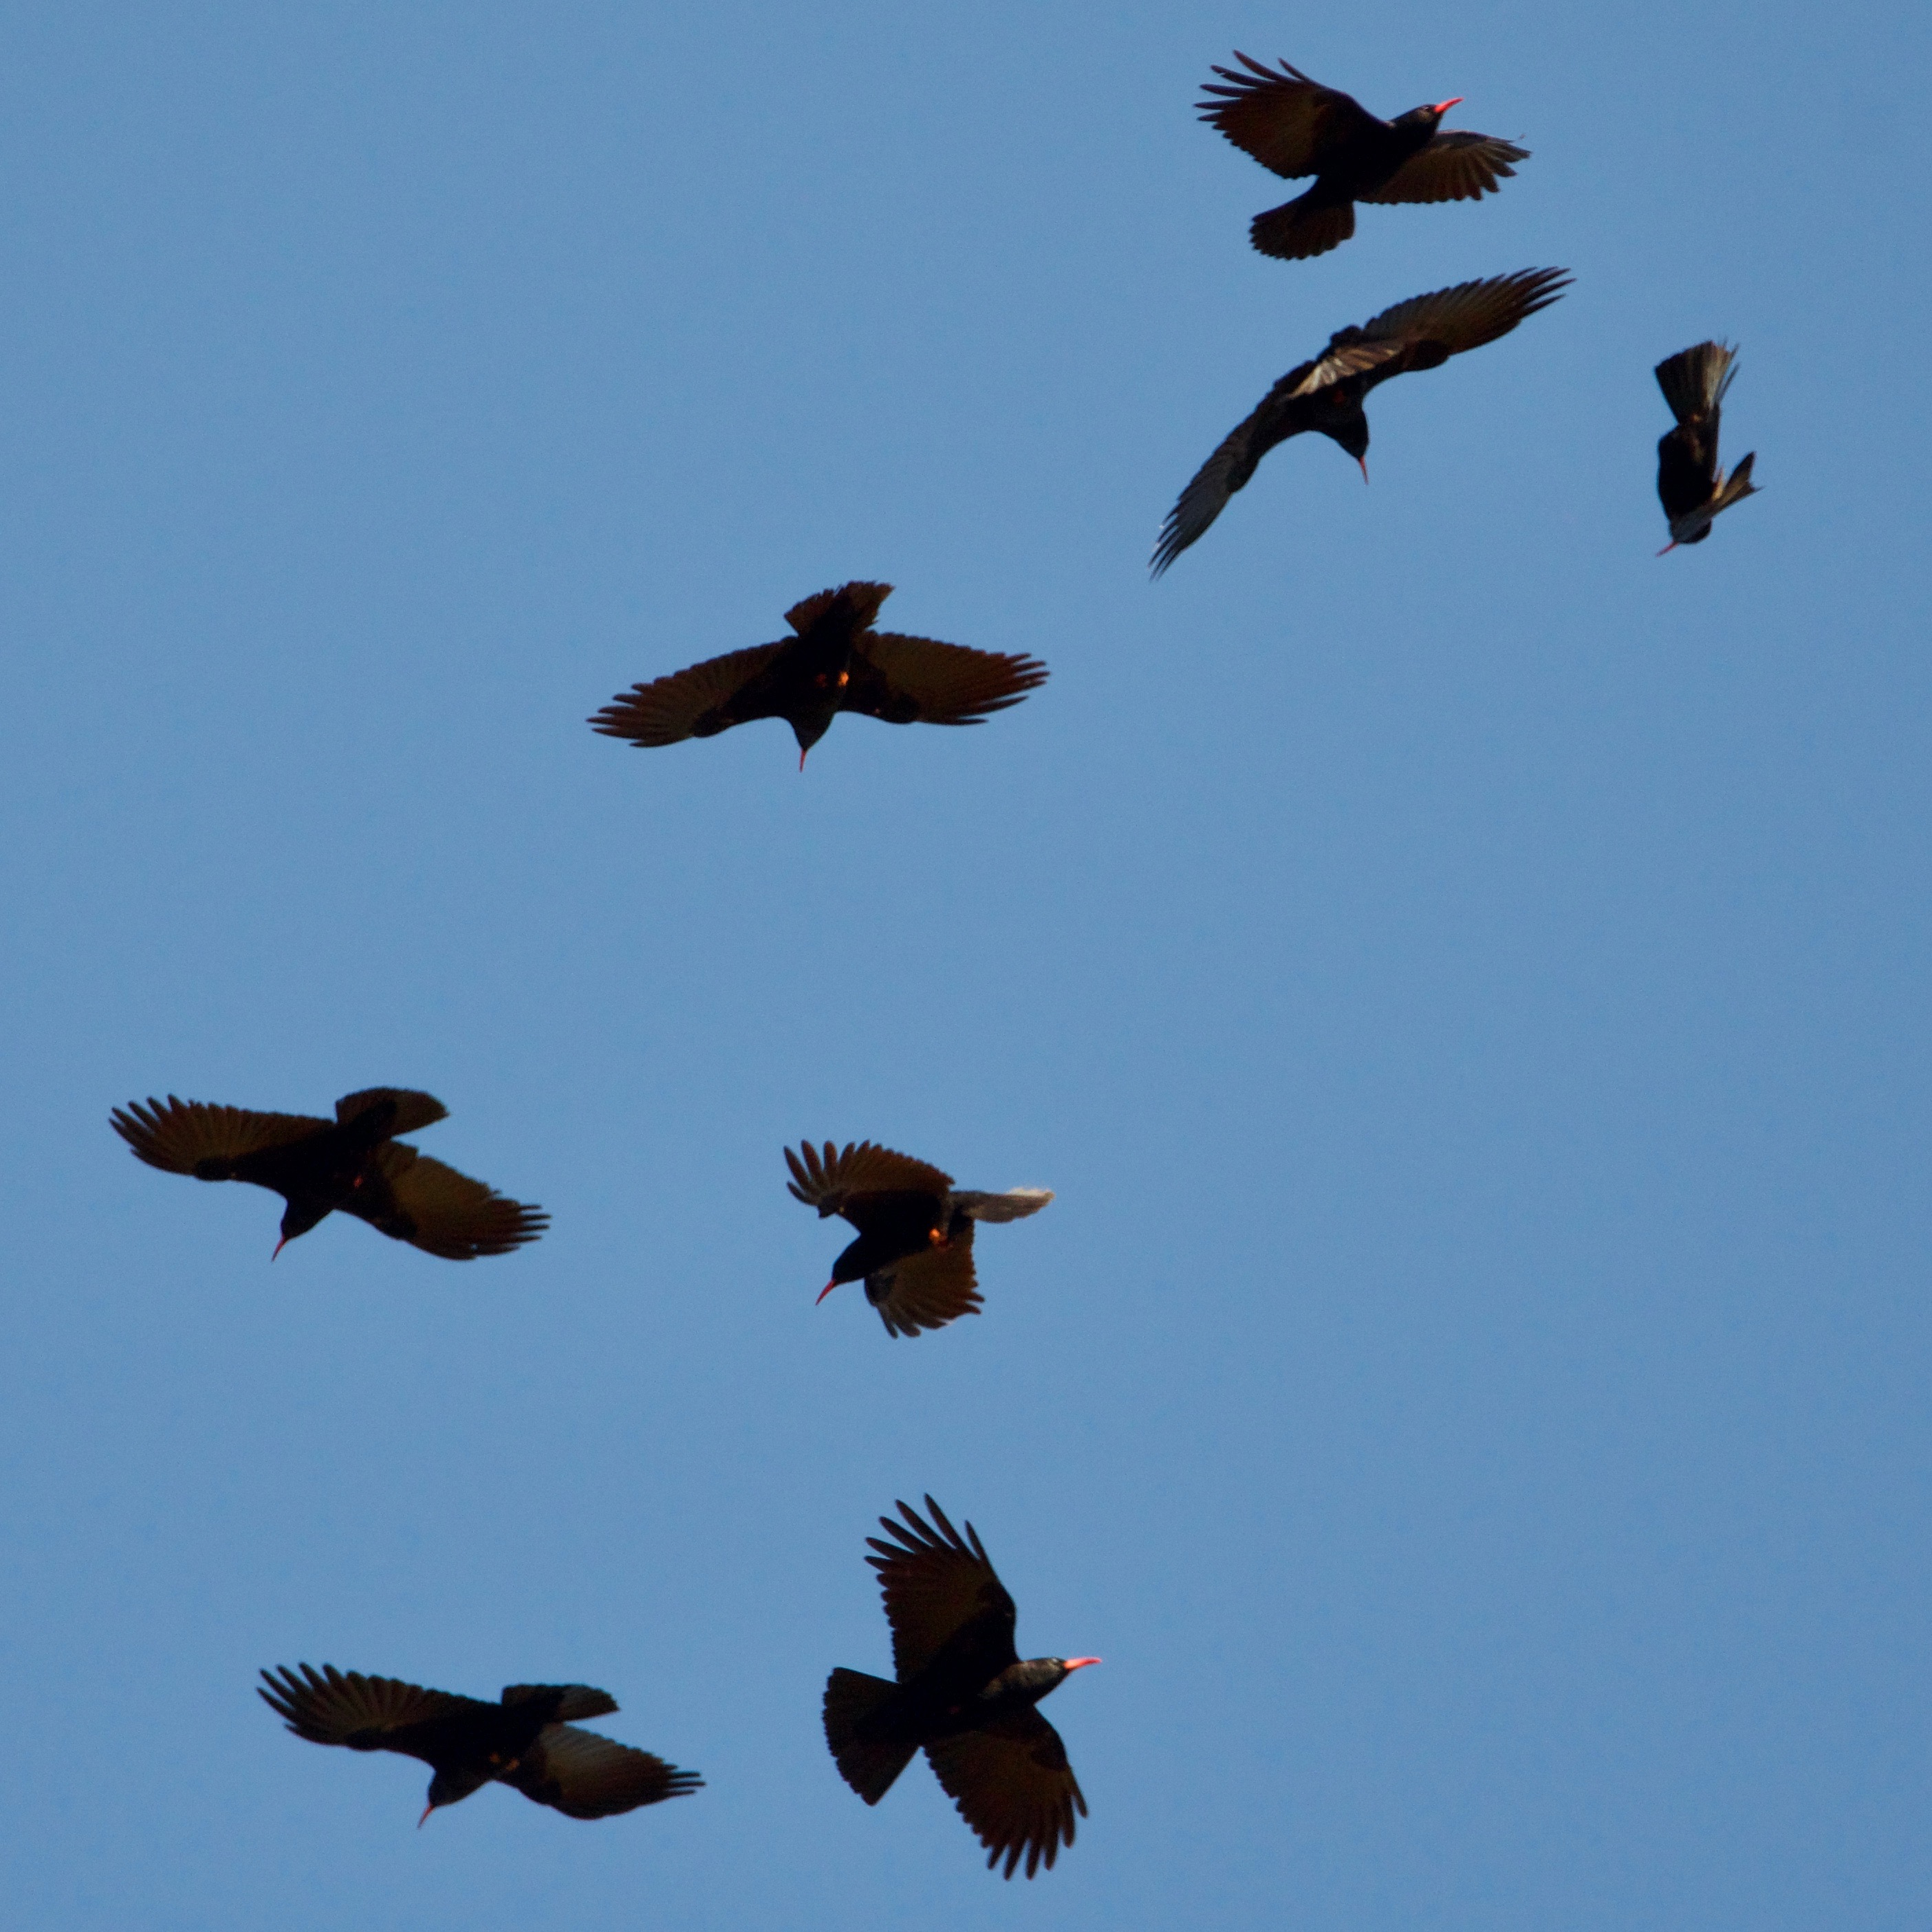 flying choughs